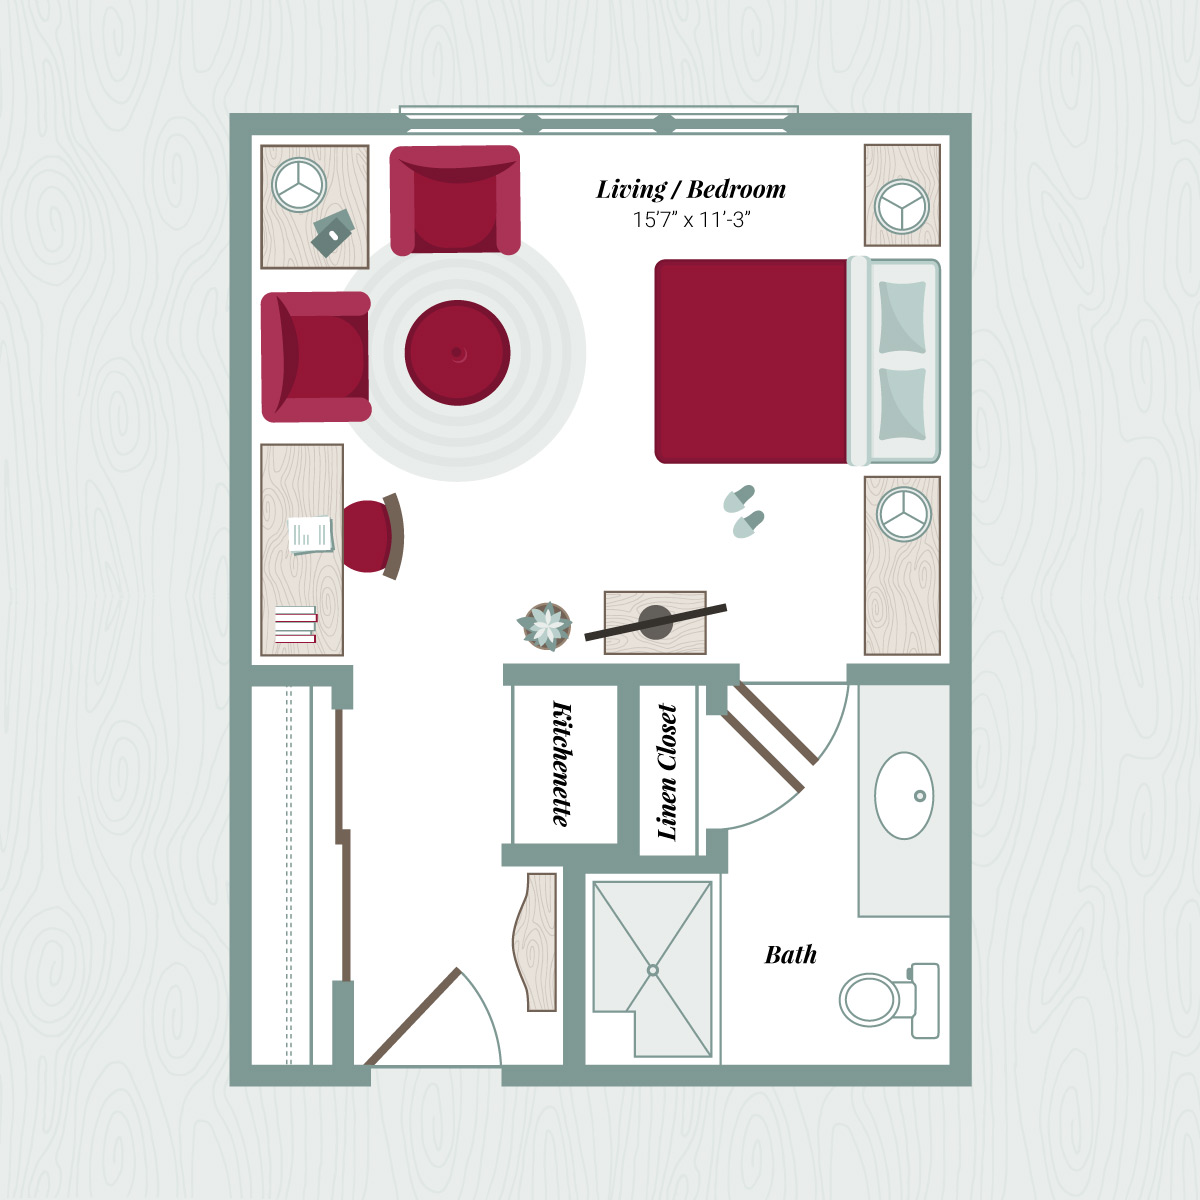 Floor Plan B - Large Studio Apartment